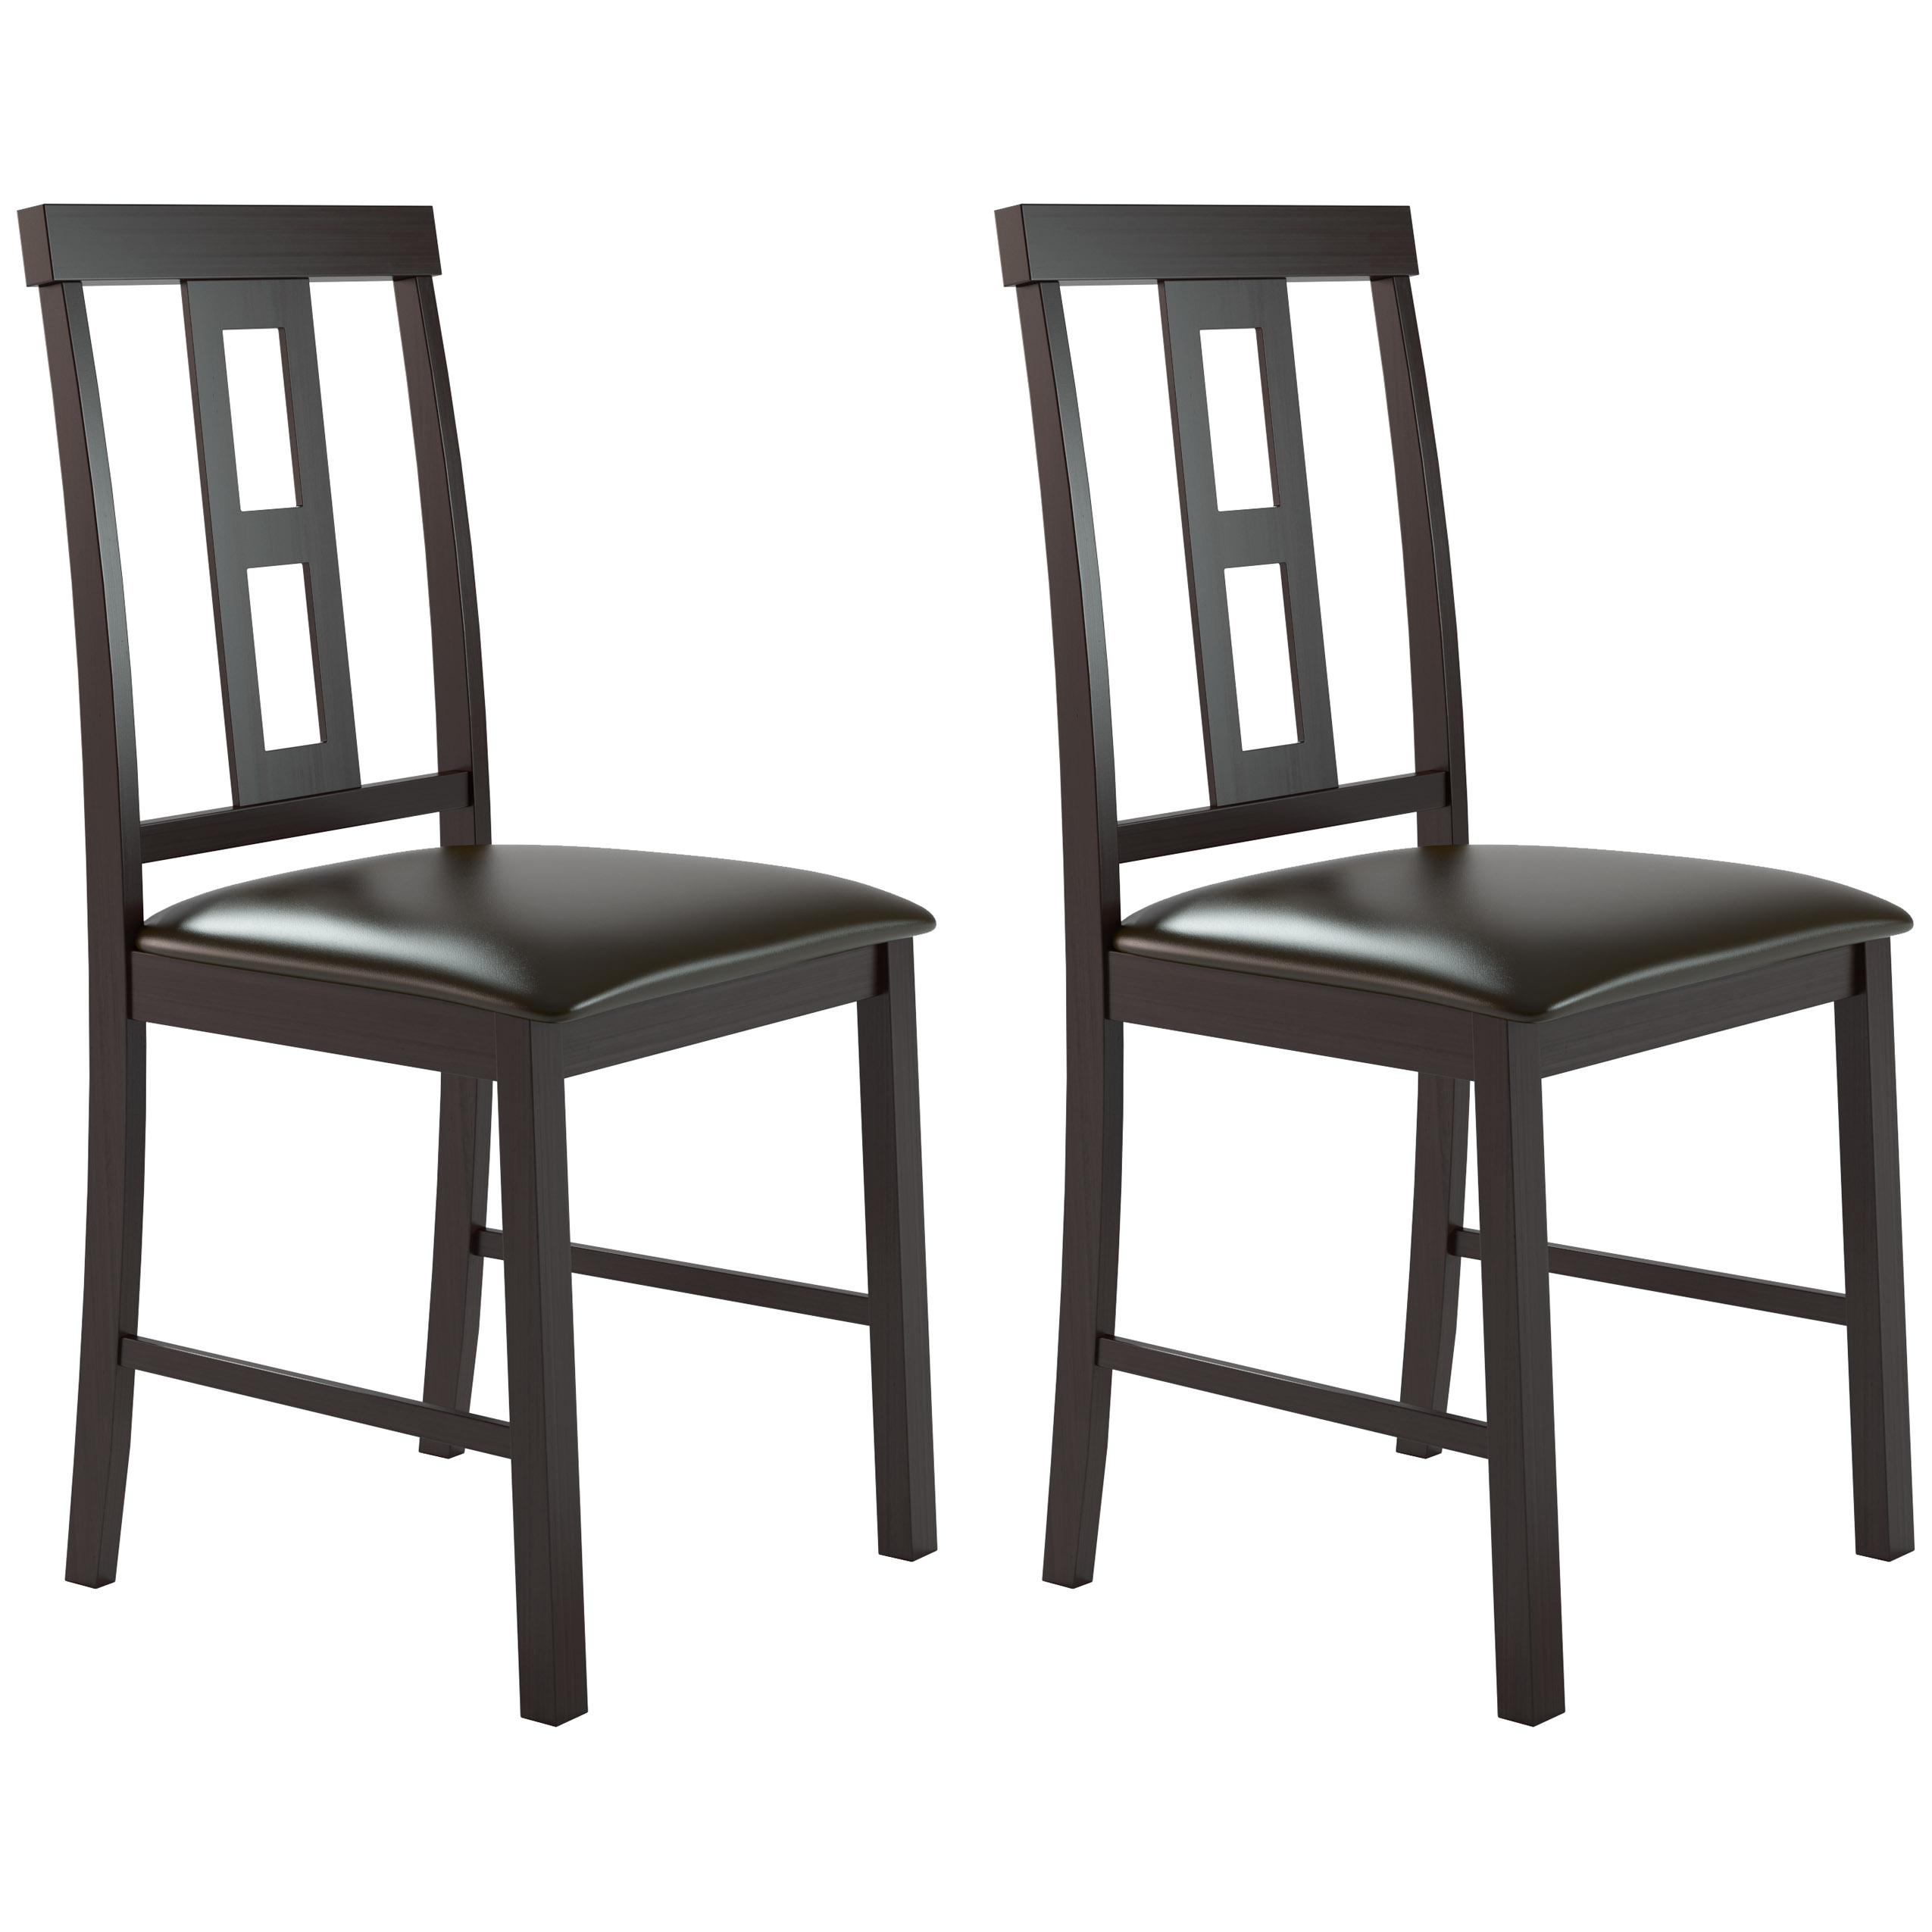 Kmart Dining Chairs Black Dining Chairs Kmart Black Kitchen Chairs